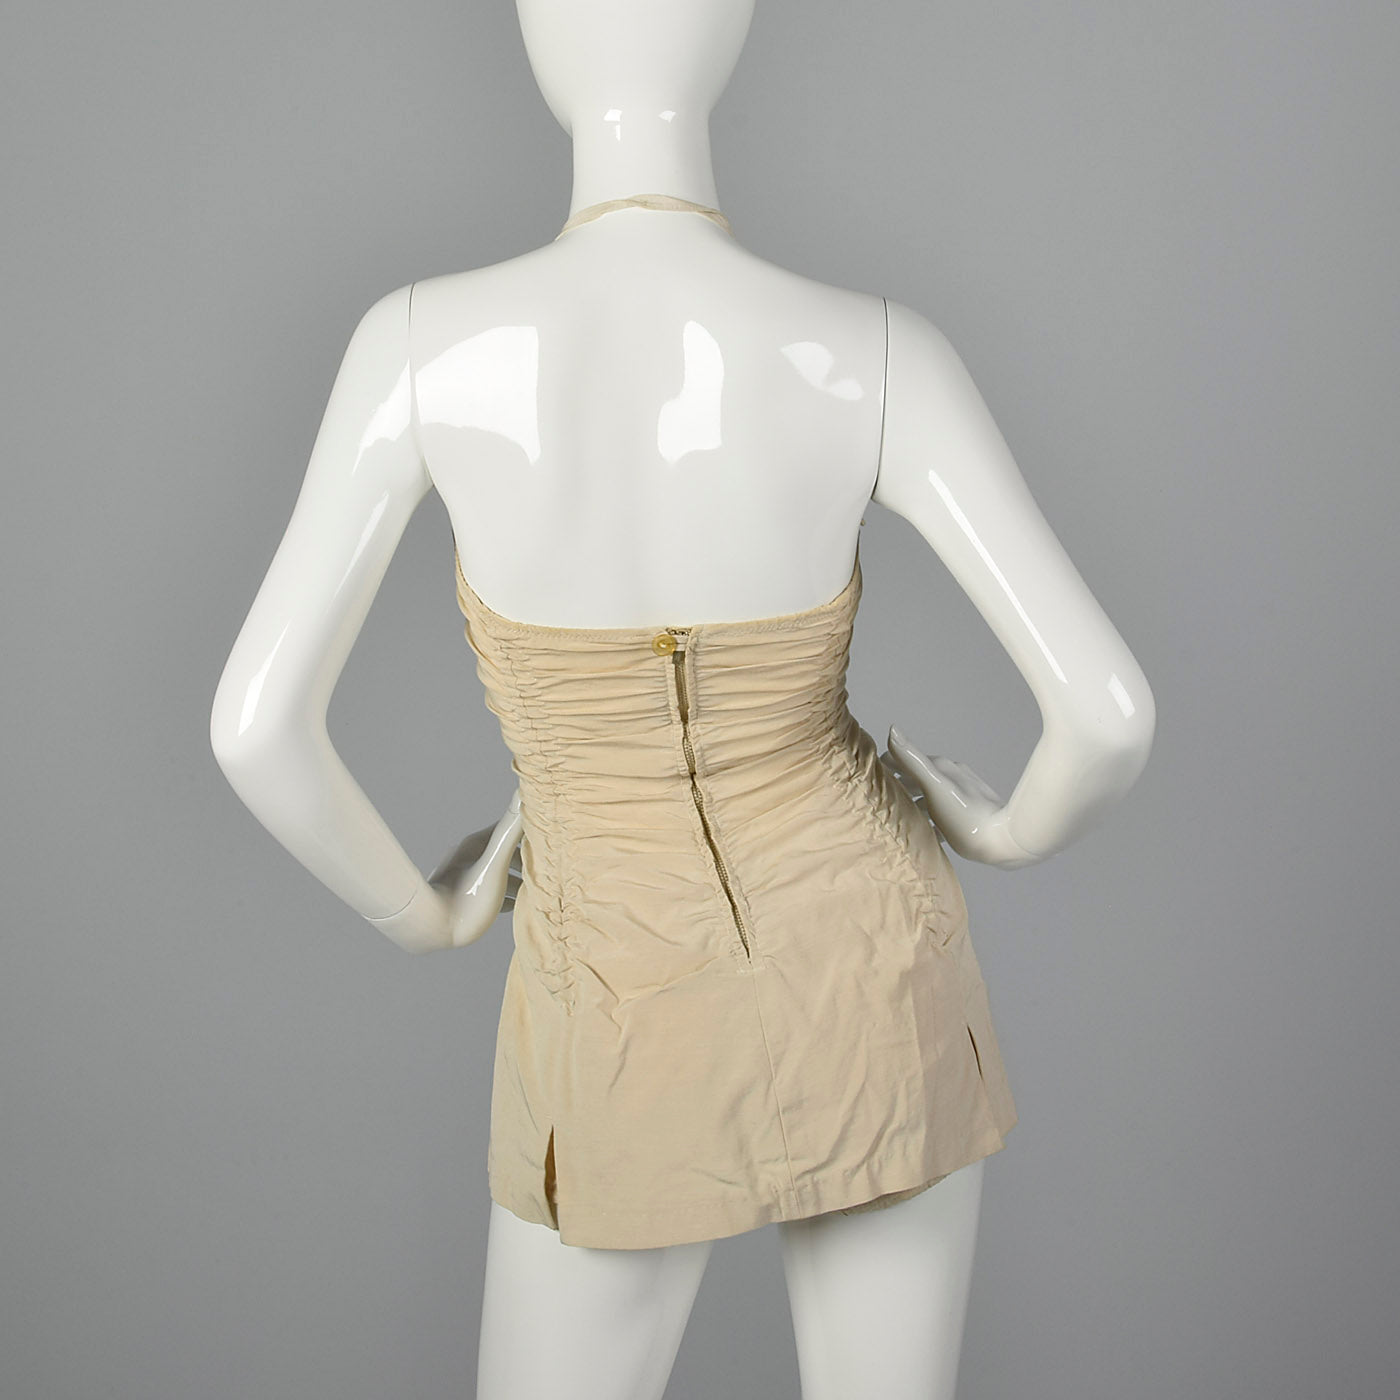 1950s Pin Up Halter Swimsuit